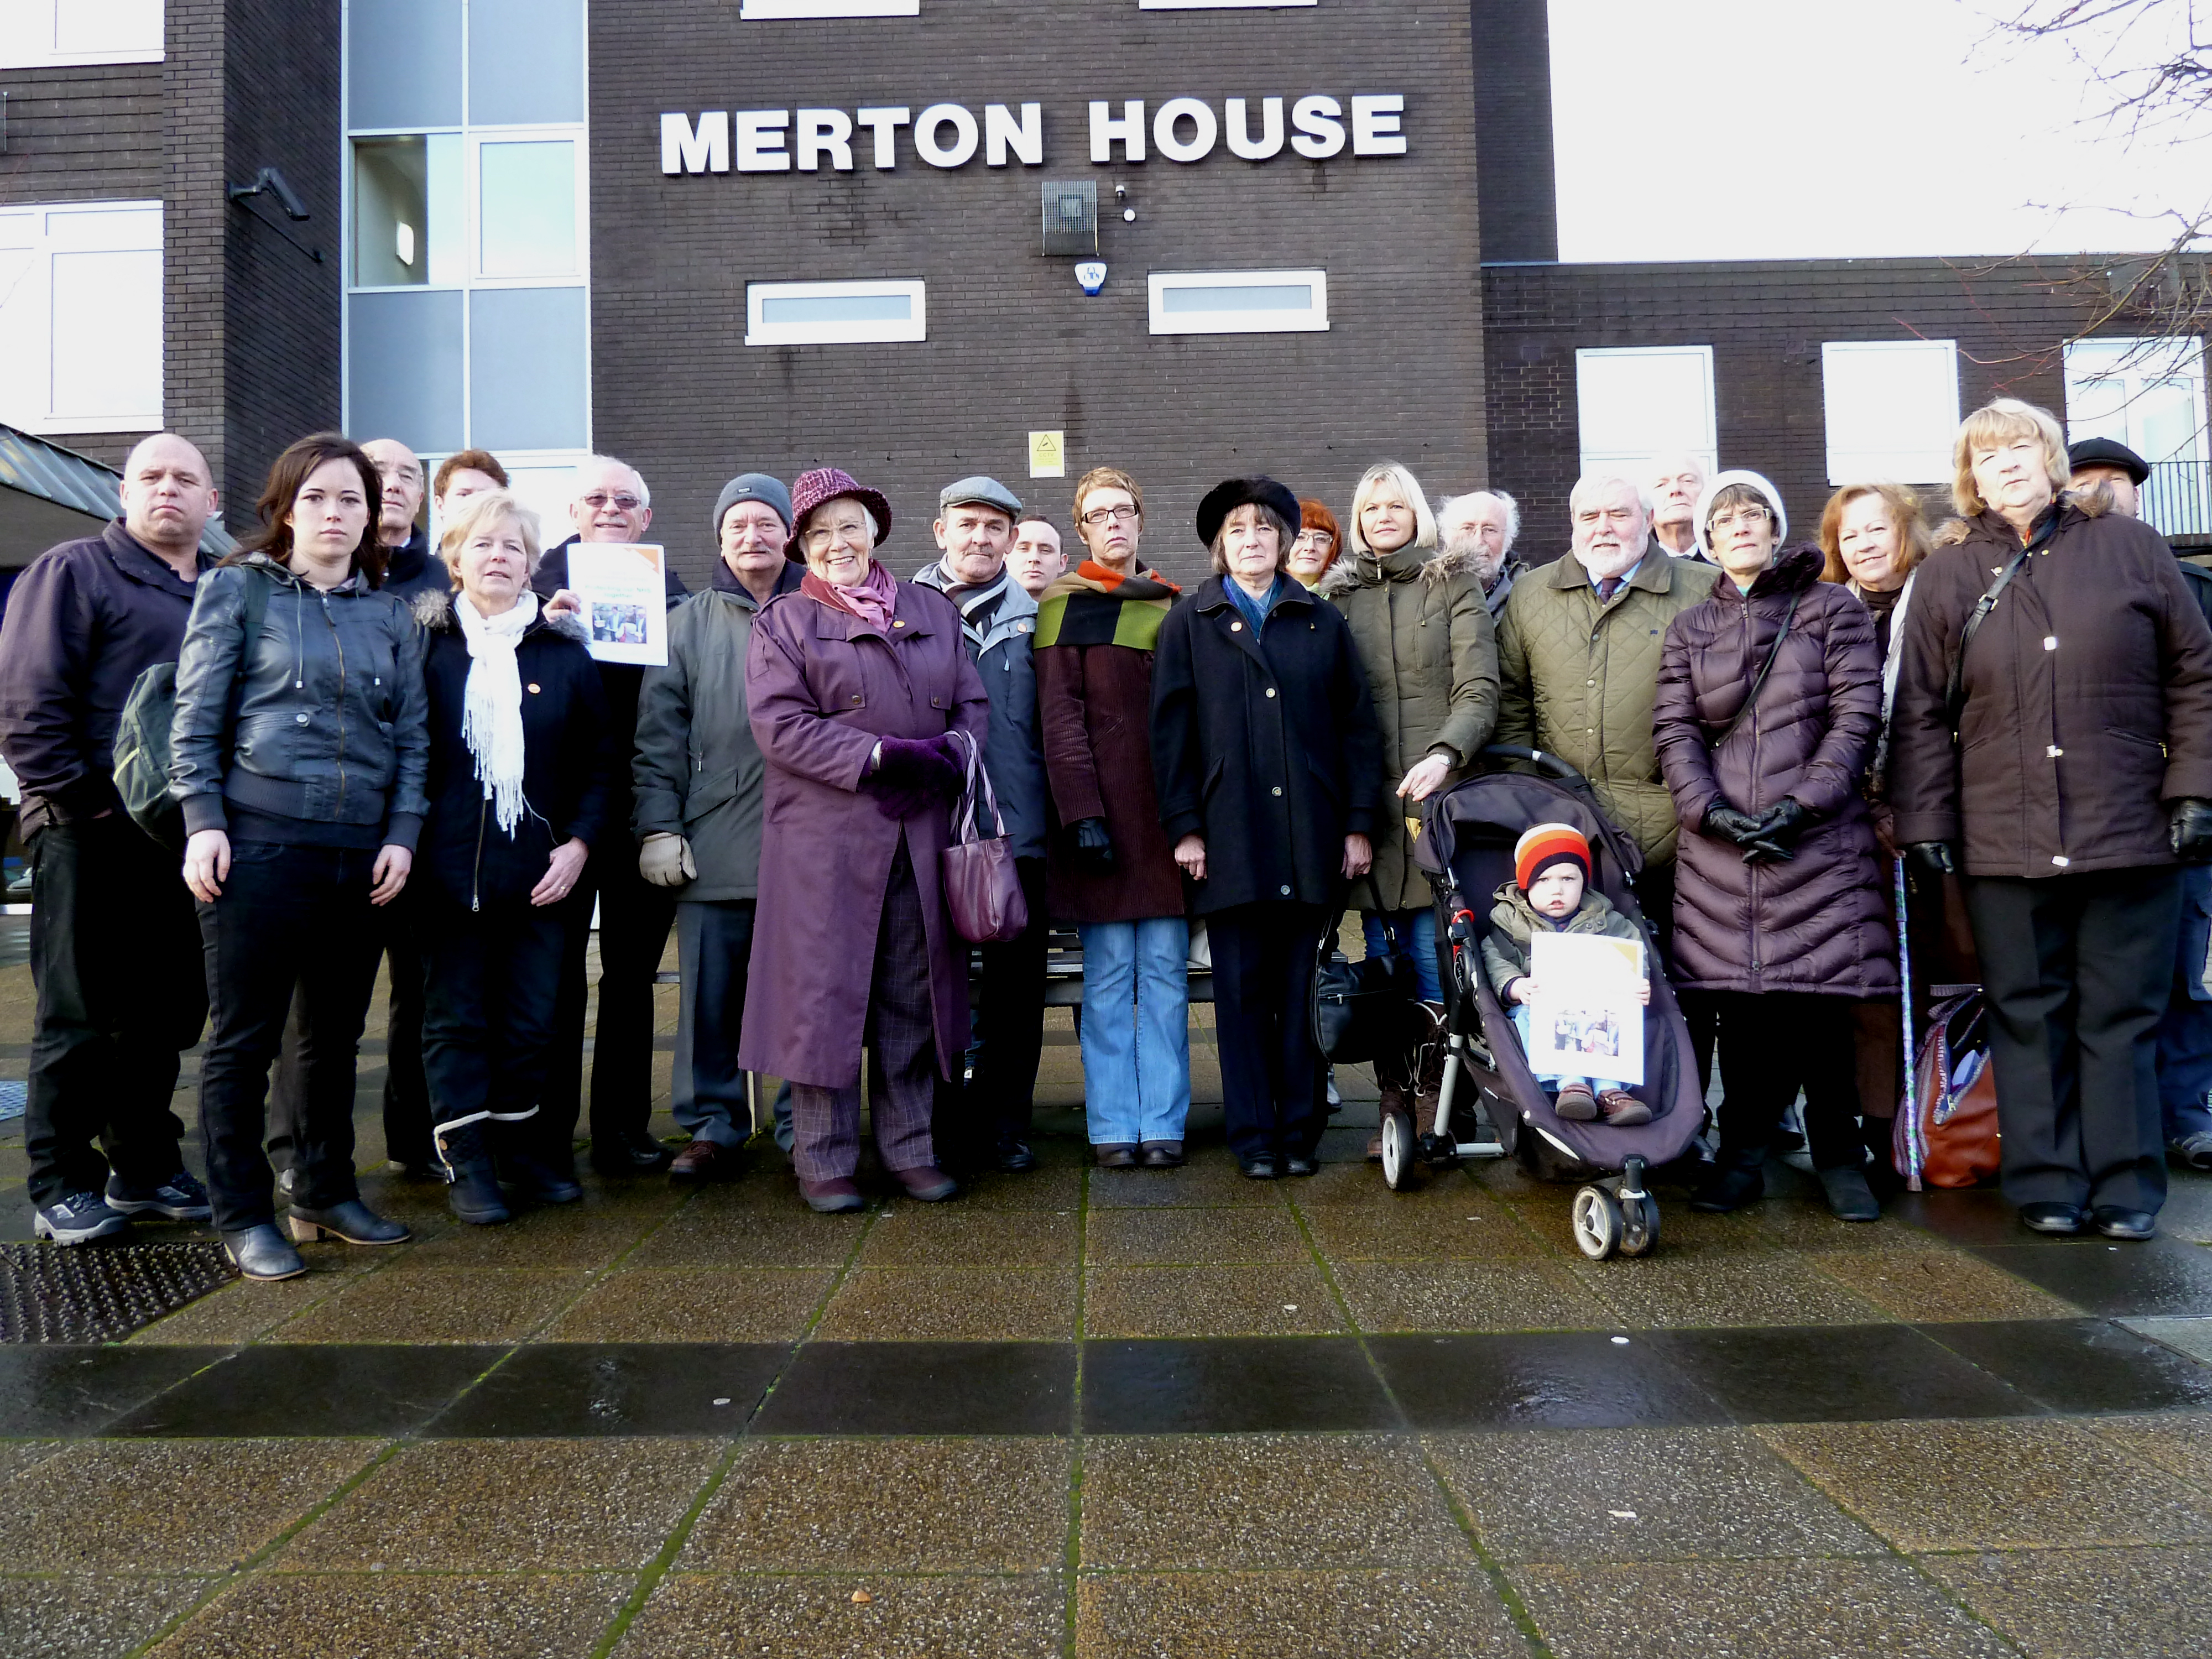 Sefton Councillors and Labour Action Team members, Cllr Dave Robinson, Ben Murphy, Cllr Veronica Bennett and Cllr Nina Killen, with 38 Degrees members at Merton House where they handed in the 1,600-name petition calling on the new Clinical Commissioning Groups to protect the NHS from privatisation.